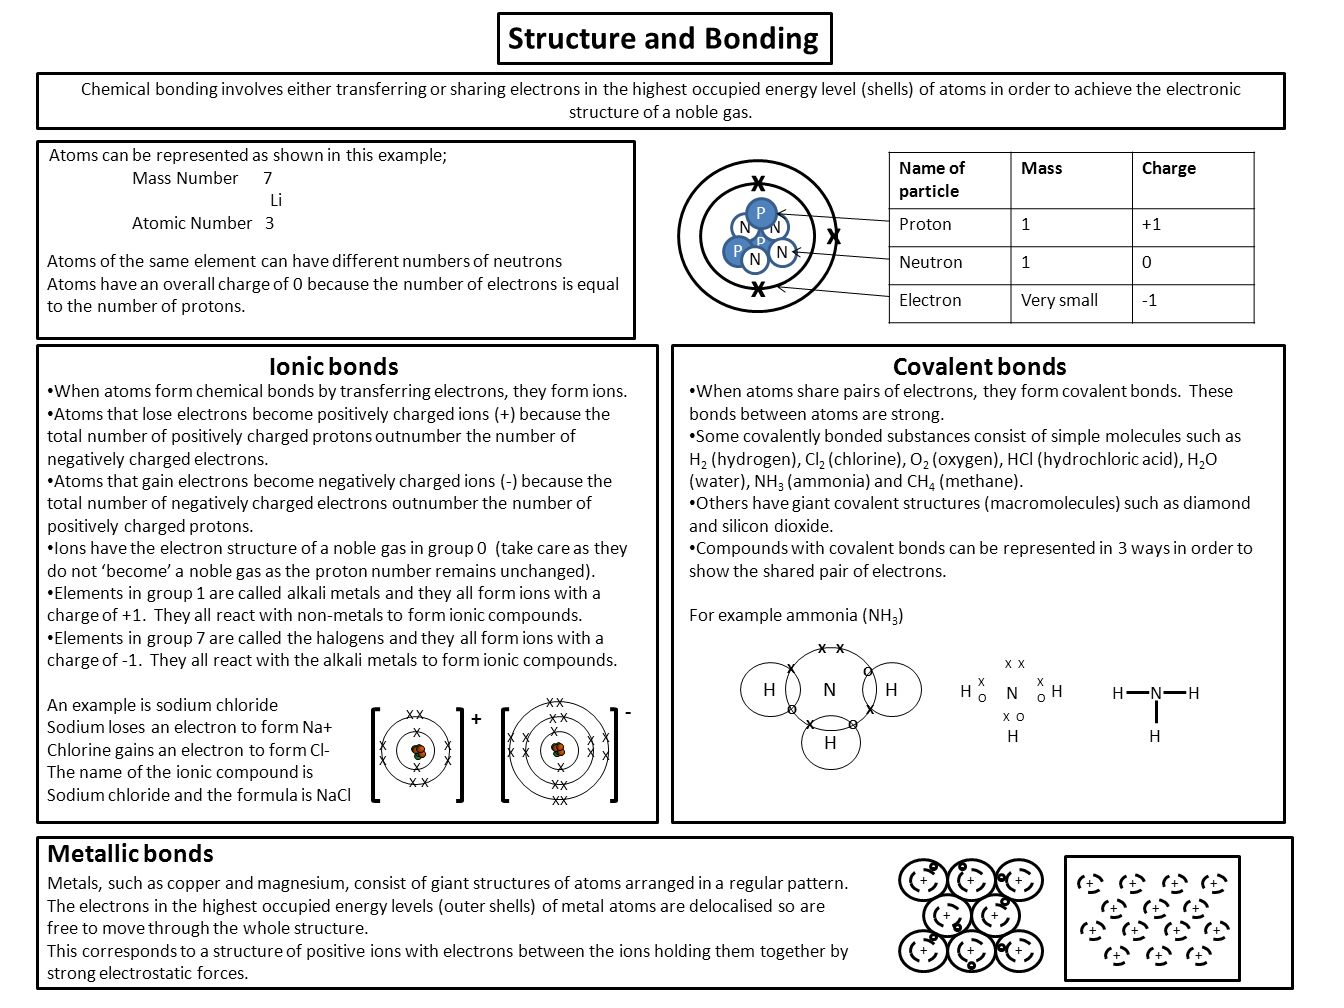 worksheet Ionic And Metallic Bonding Worksheet structure and bonding ionic bondscovalent bonds metallic chemical involves either transferring or sharing electrons